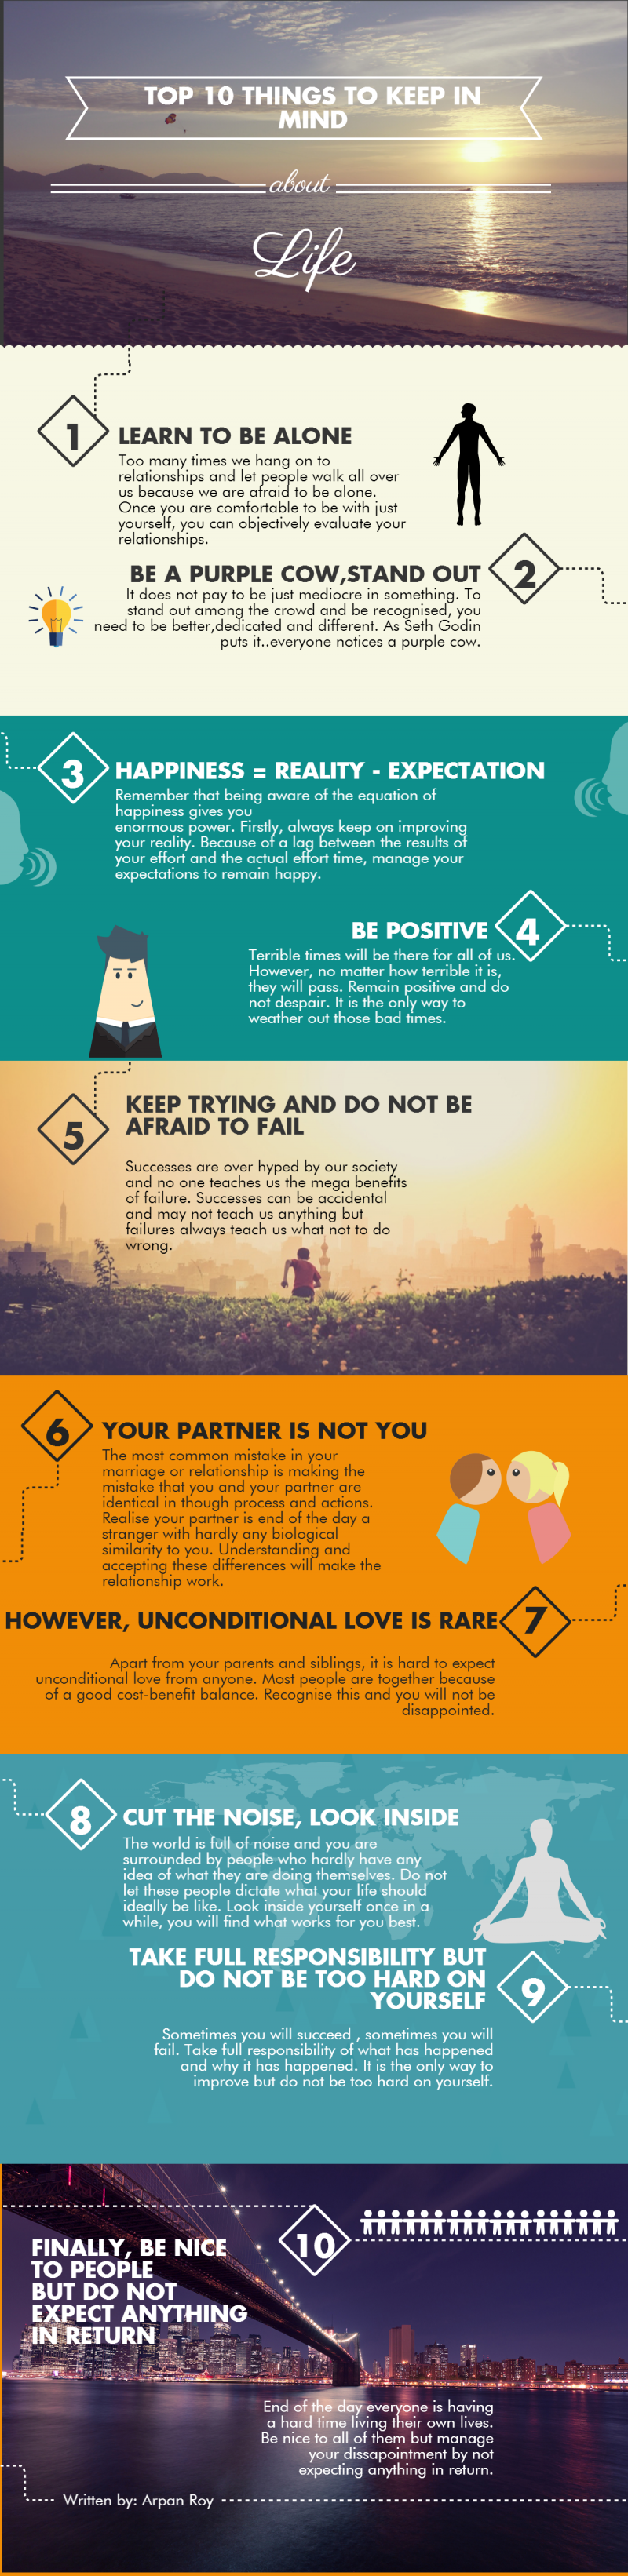 10 Things To Keep In Mind About Life